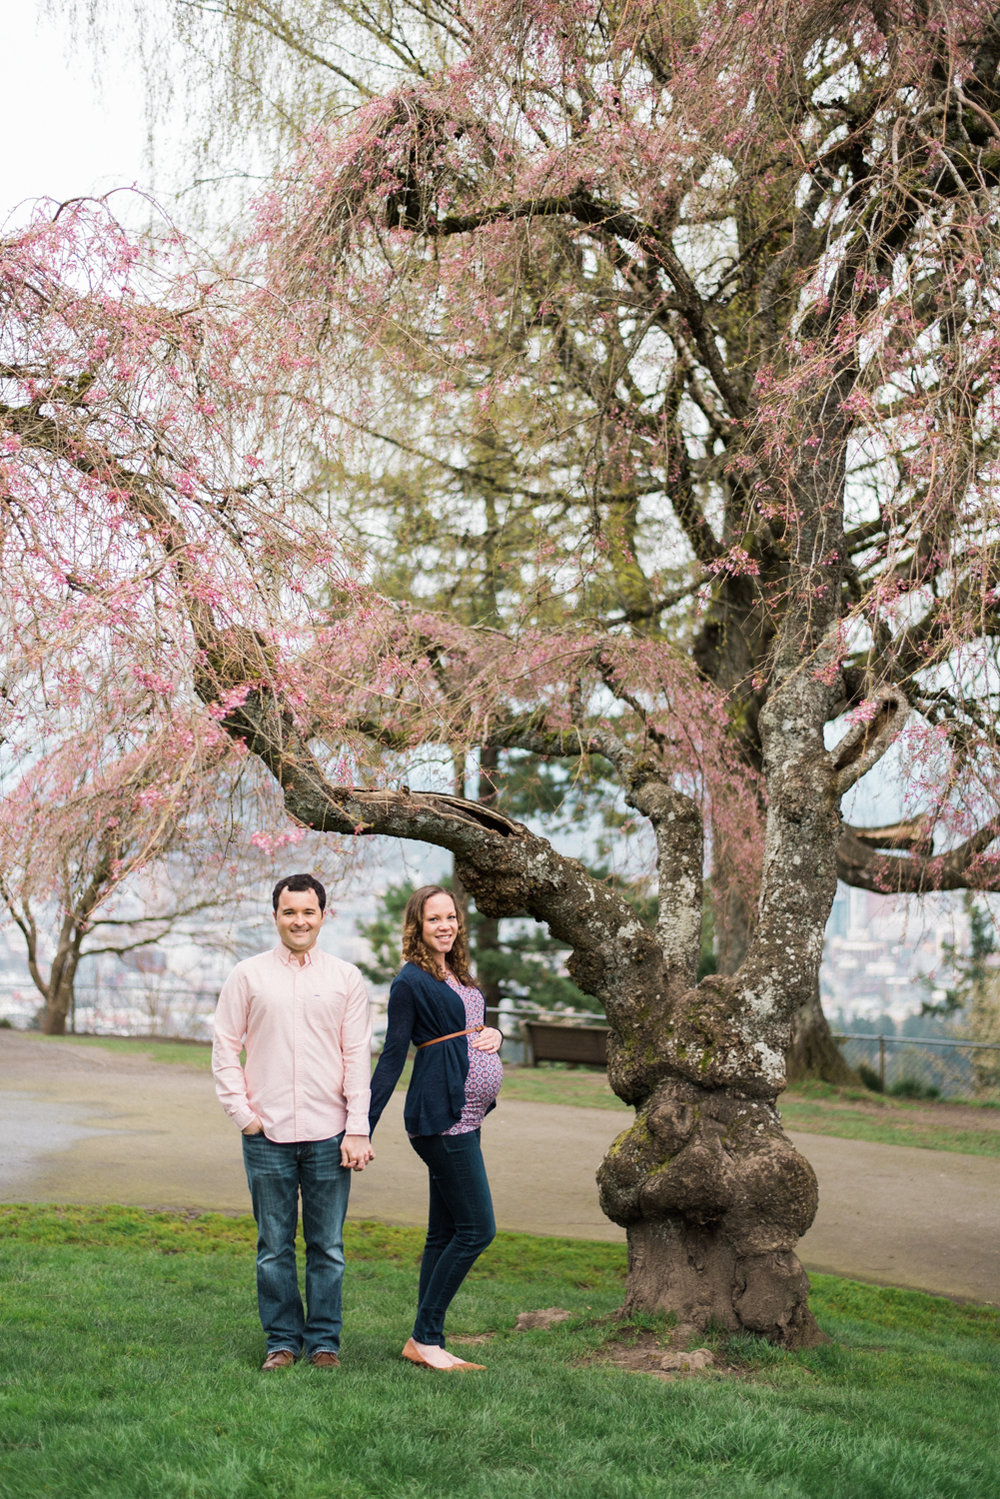 pittock-mansion-maternity-photography-portland-cherry-blossom-shelley-marie-photo-08.jpg